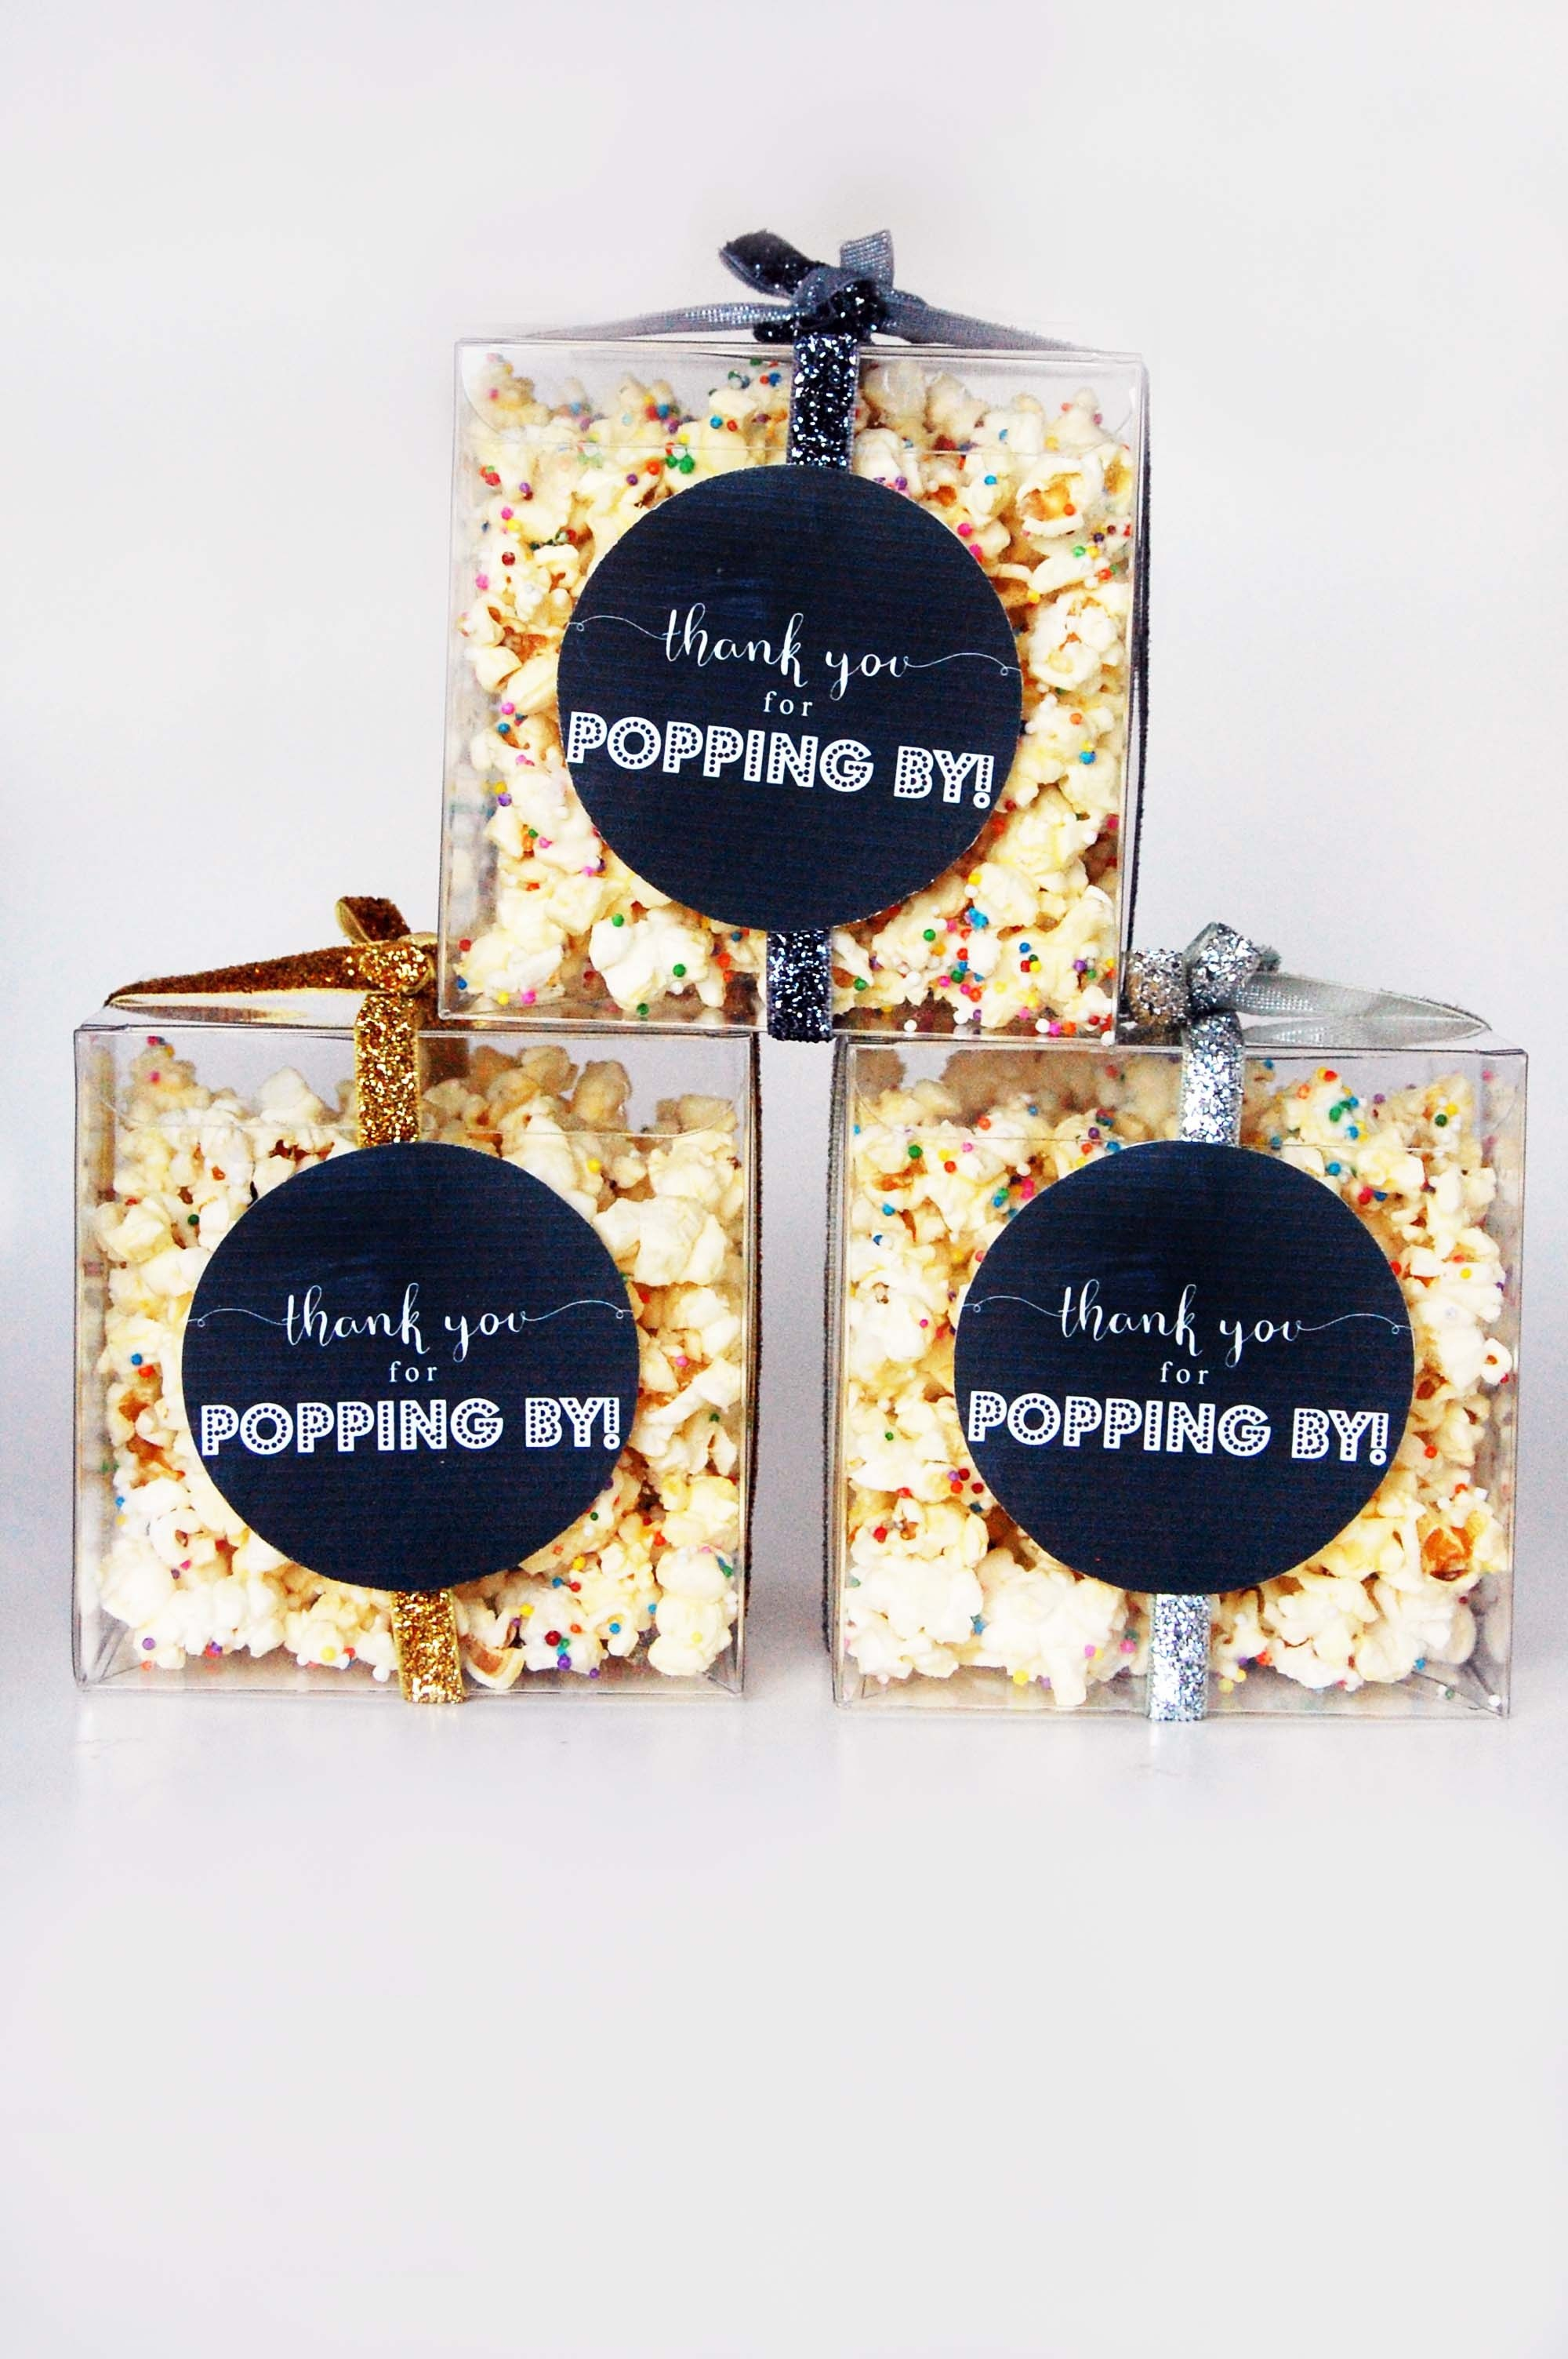 Party Popcorn Recipe + A Free Printable Favour Tag! - The Party Girl - Thanks For Popping By Free Printable